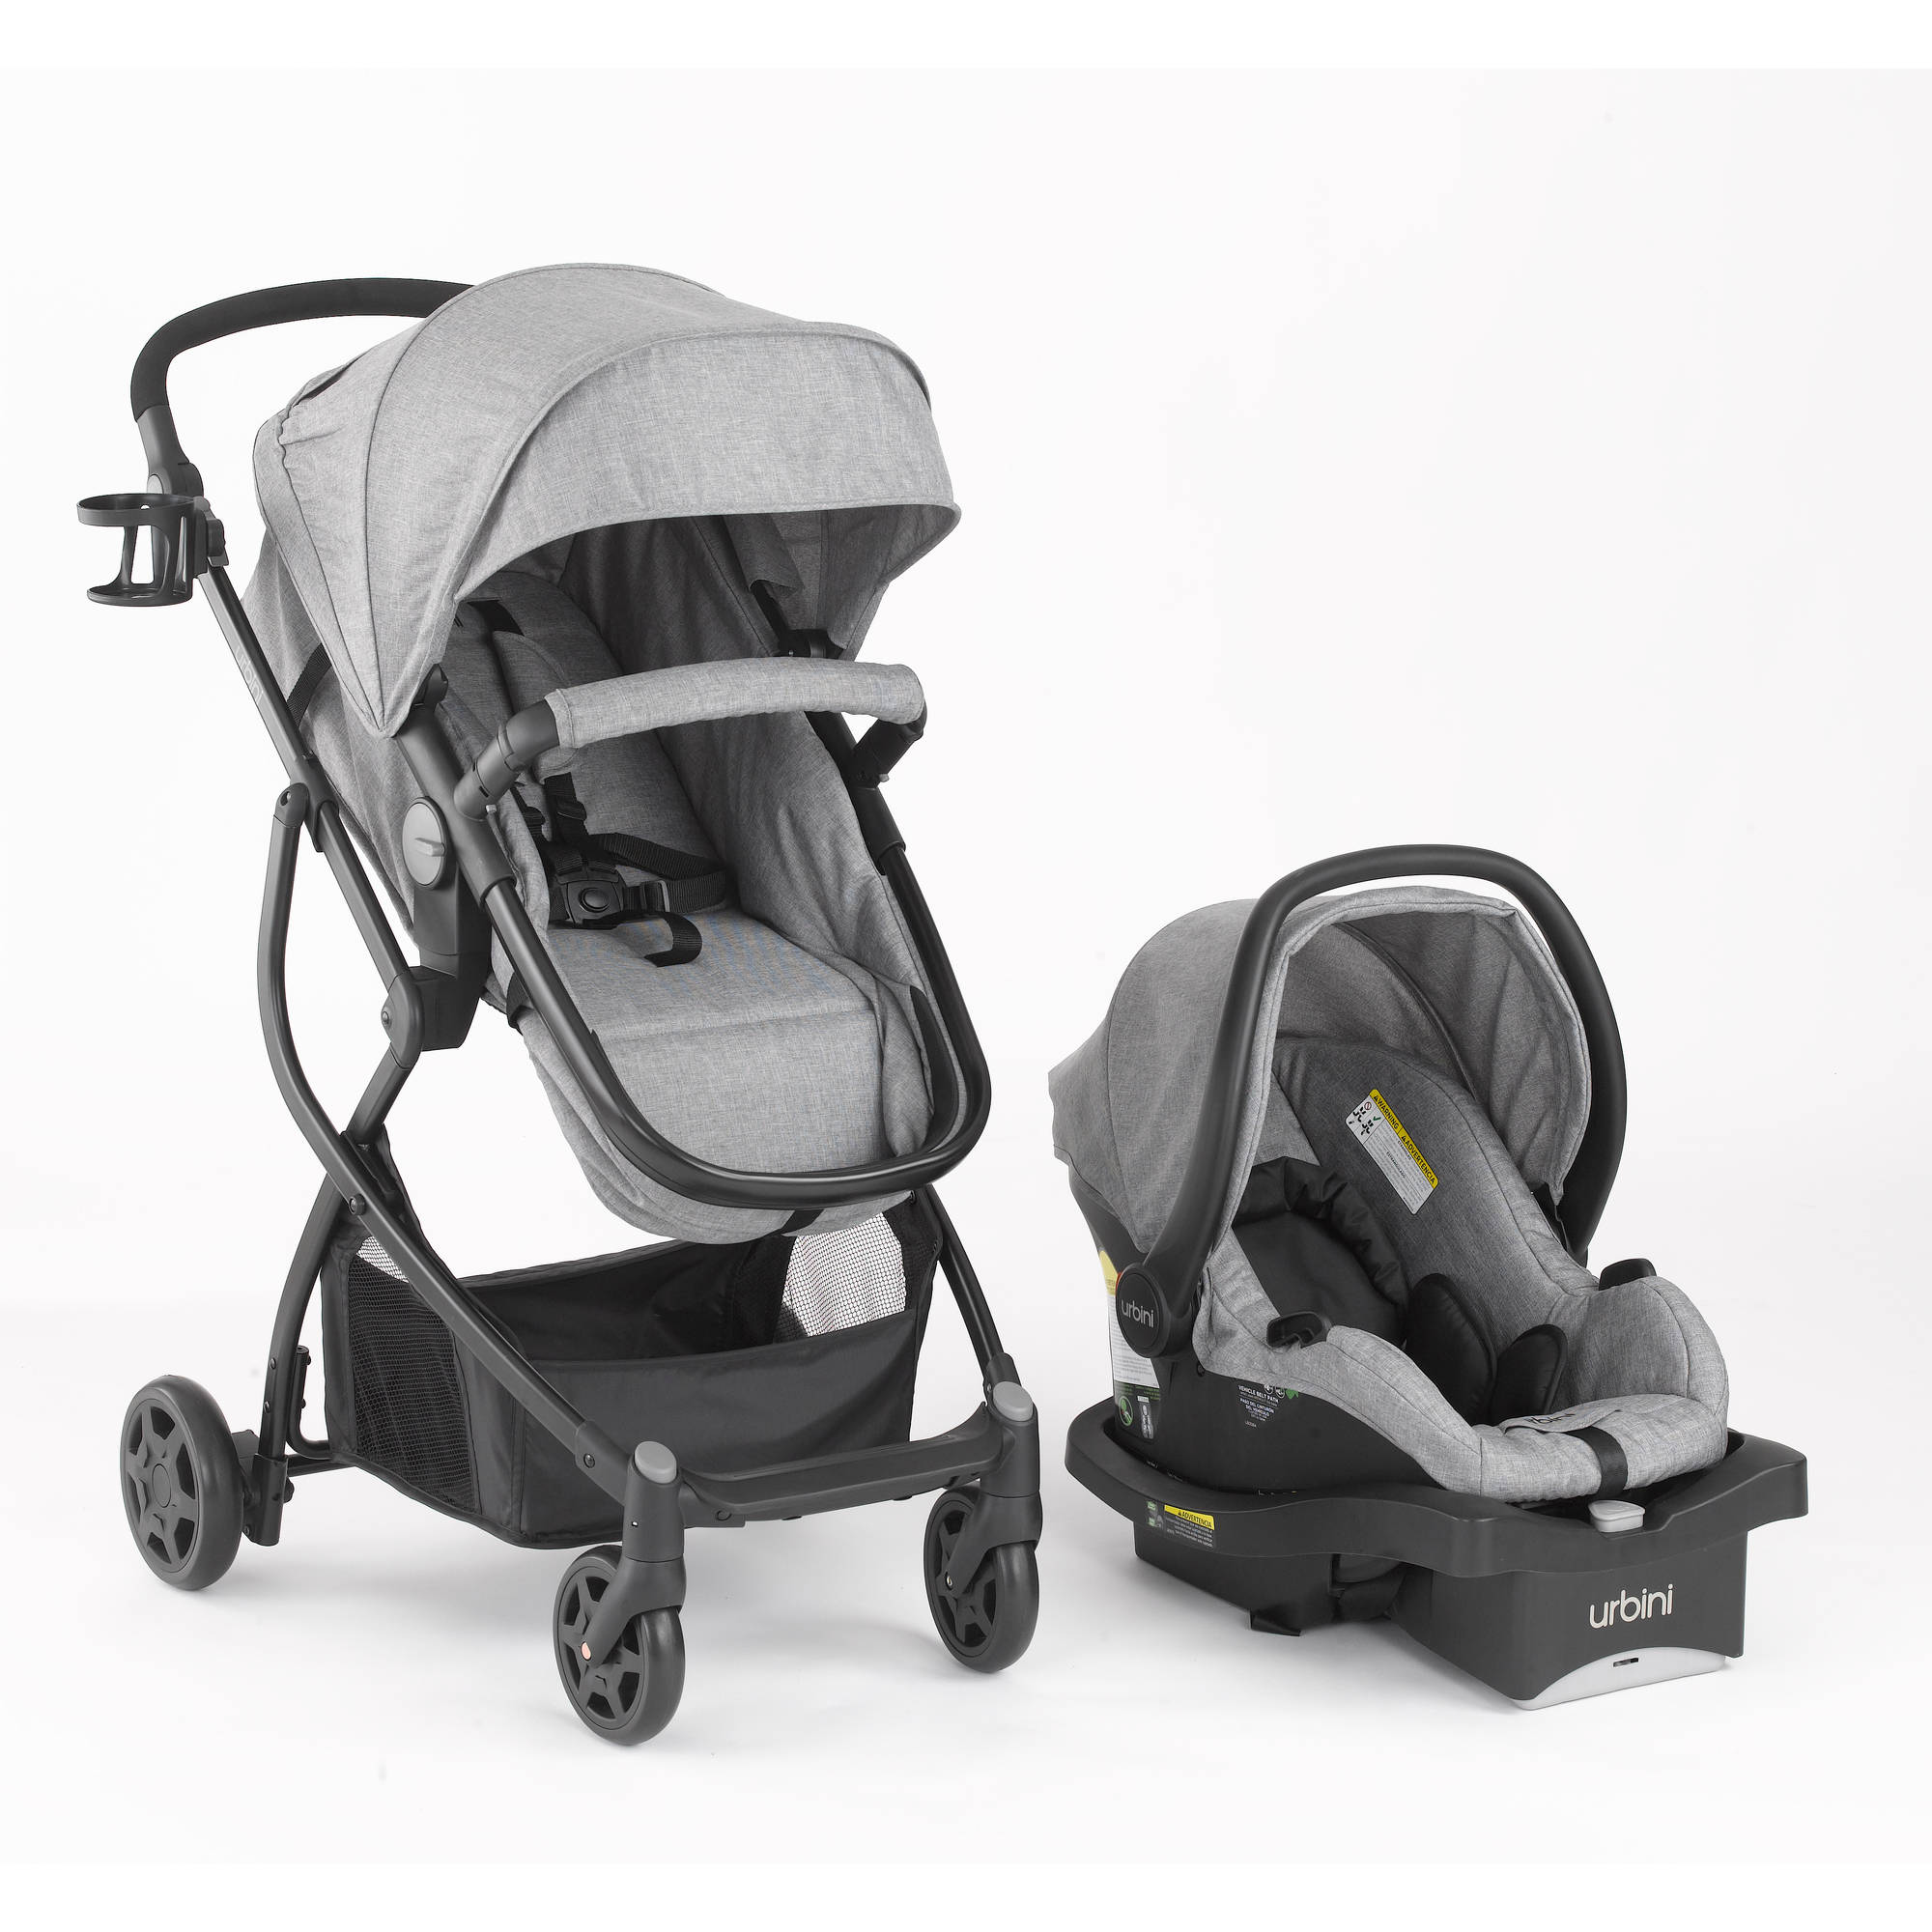 Urbini Omni Plus Travel System, Special Edition